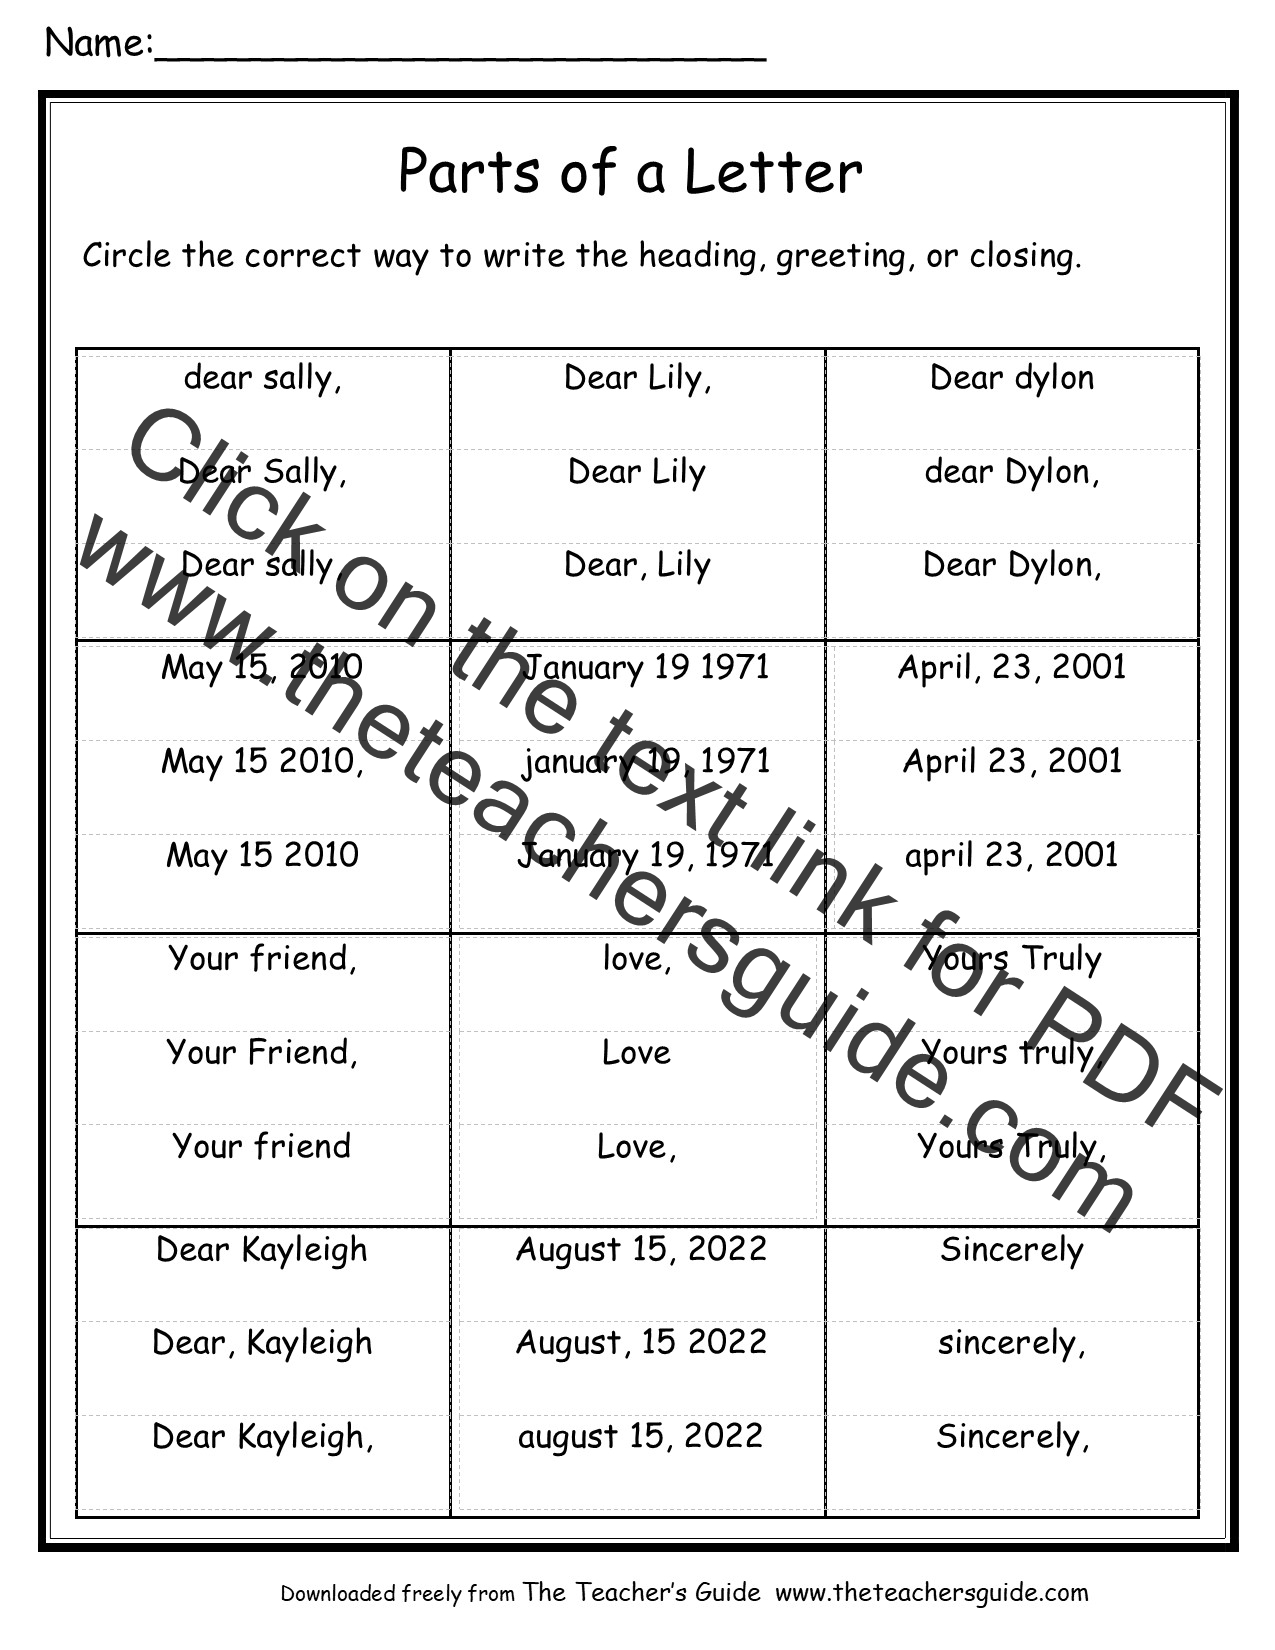 Business Letter Labeled Parts